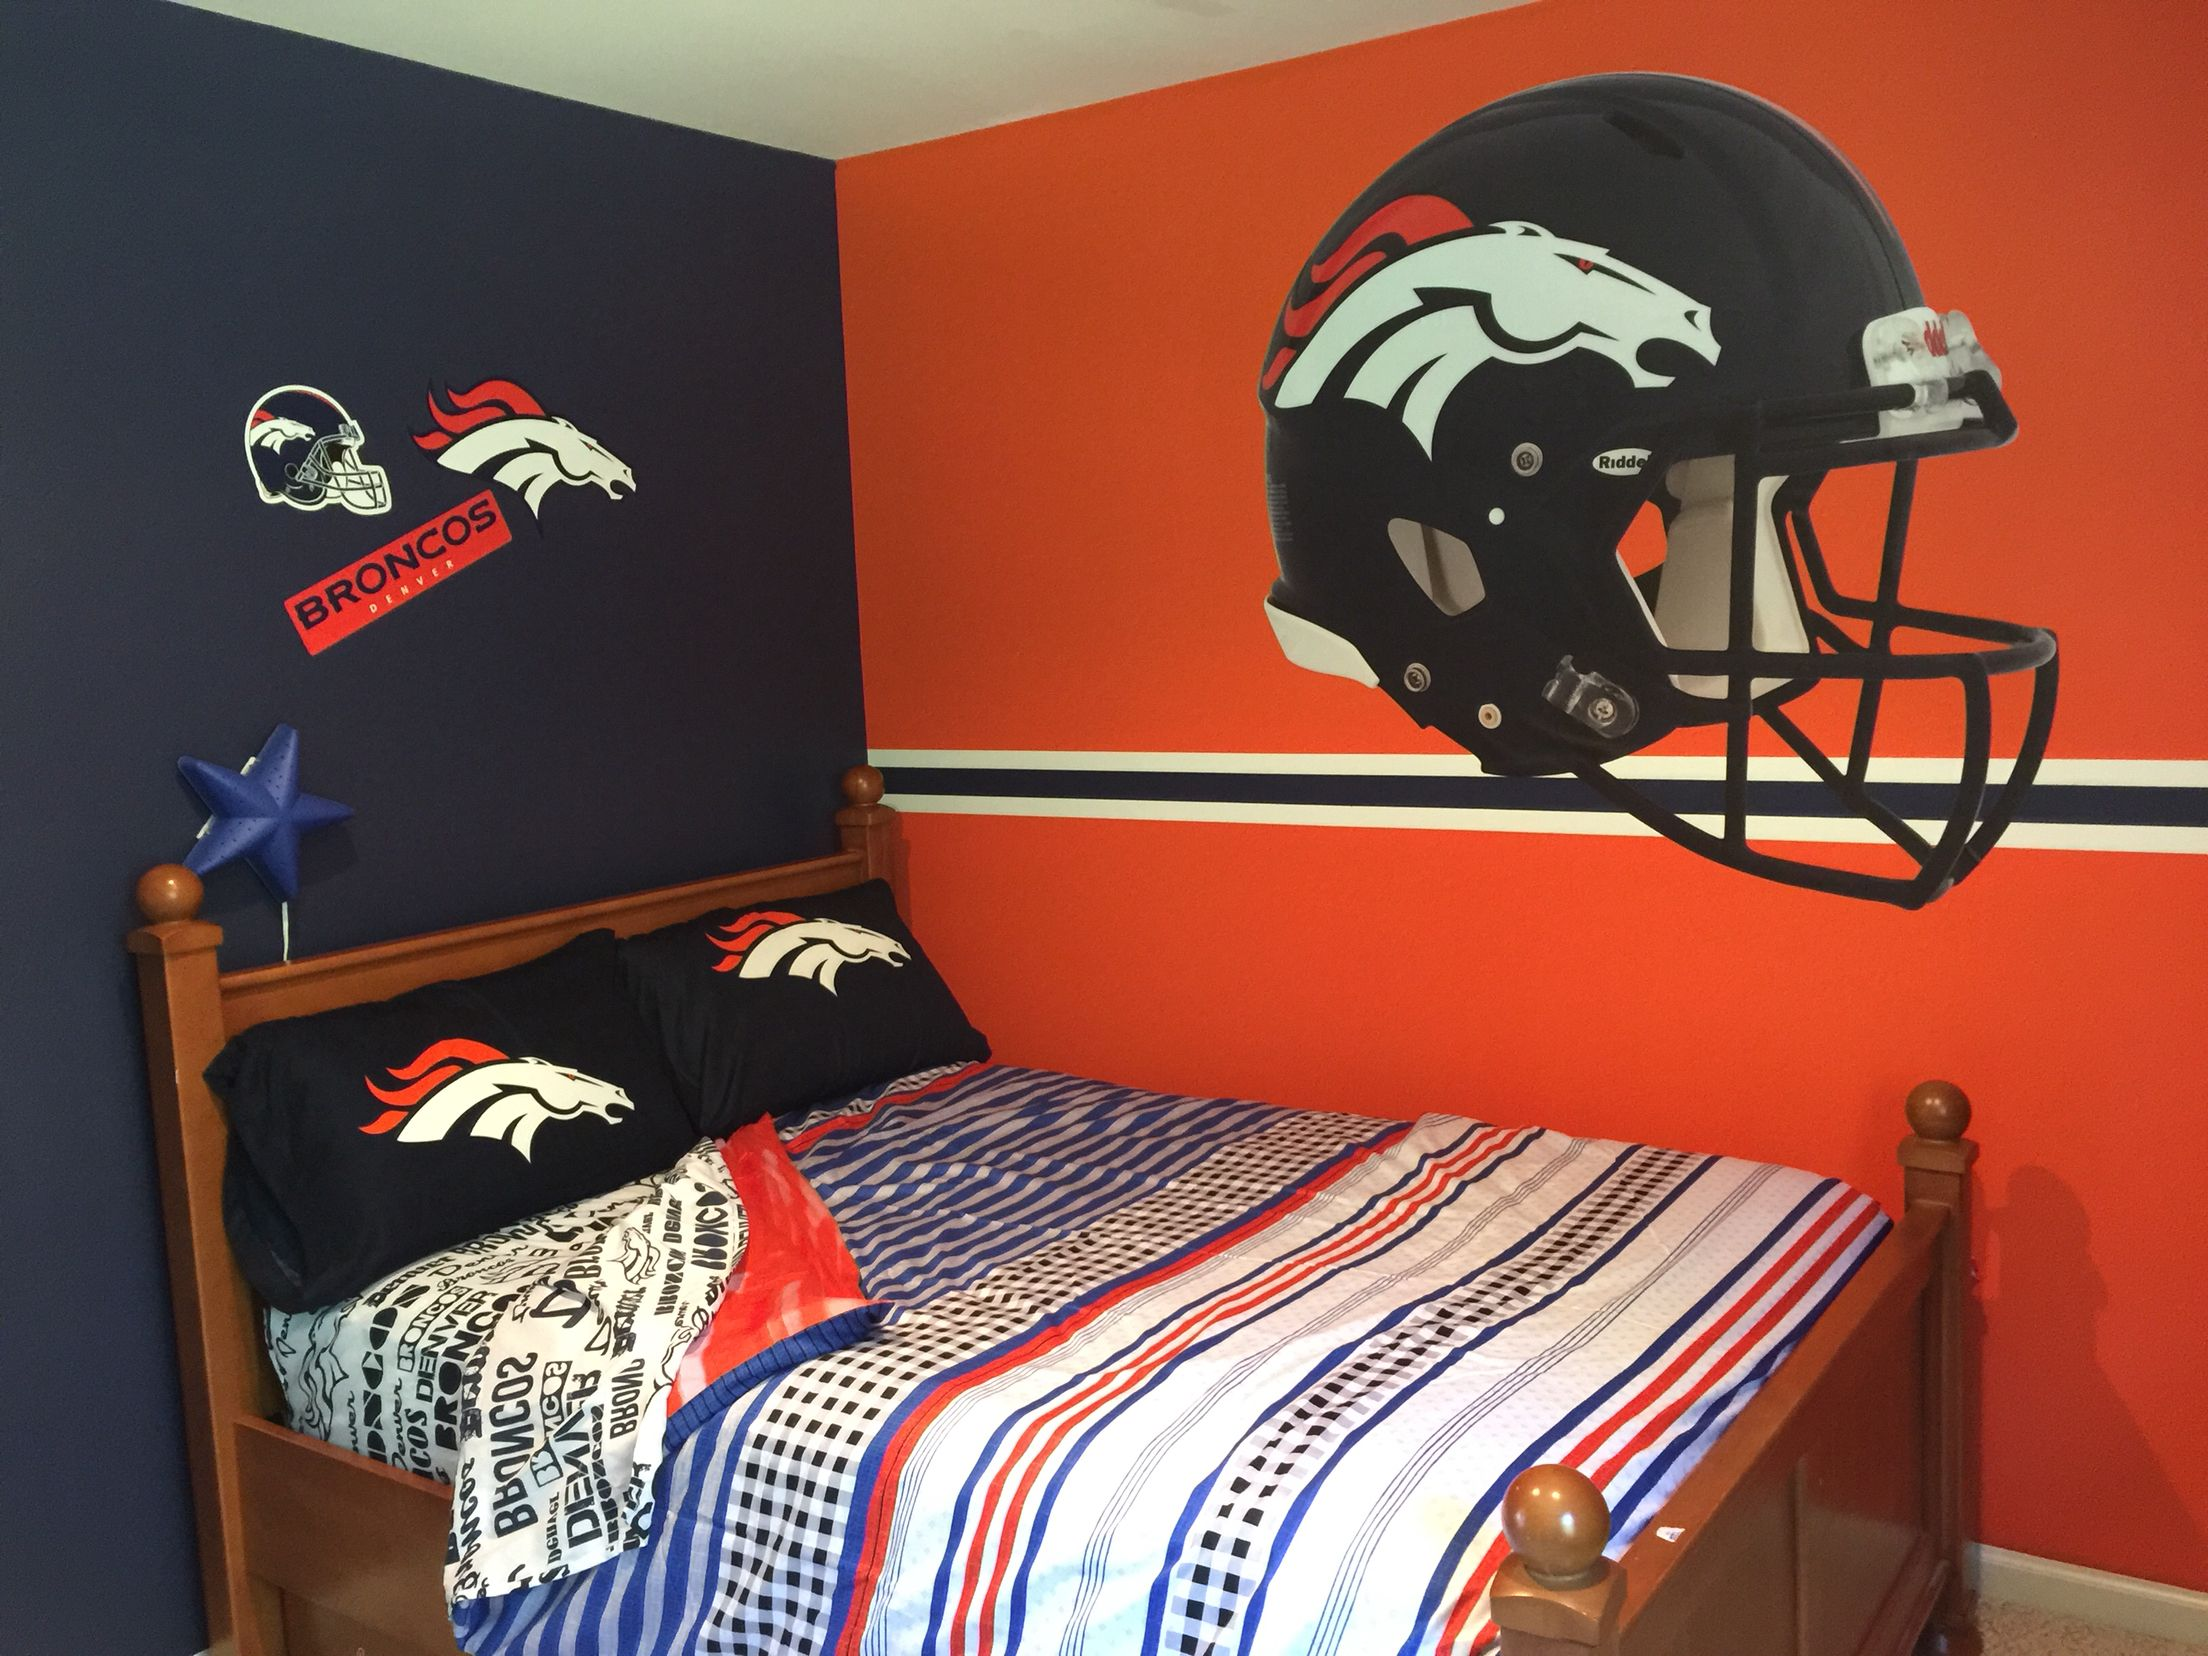 Merveilleux Chadu0027s Denver Broncos Bedroom Denver Broncos Funny, Denver Broncos Womens, Denver  Broncos Football,